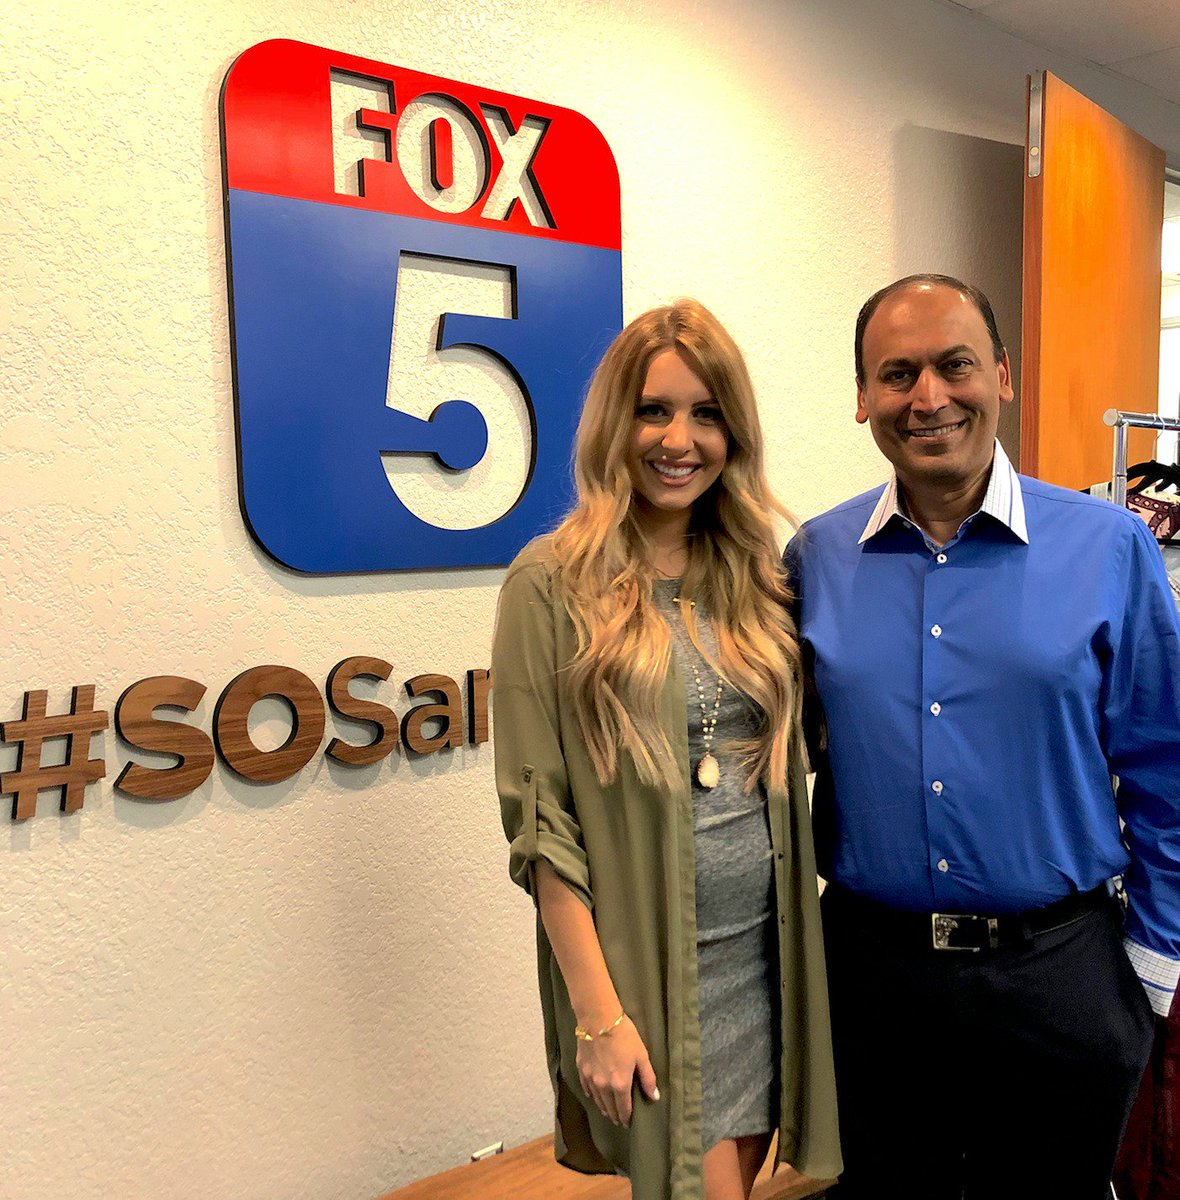 Catch San Diego Seller Stylist, Kylie, and our founder & CEO, @marrc, live now on @fox5sandiego! 🙌🏼